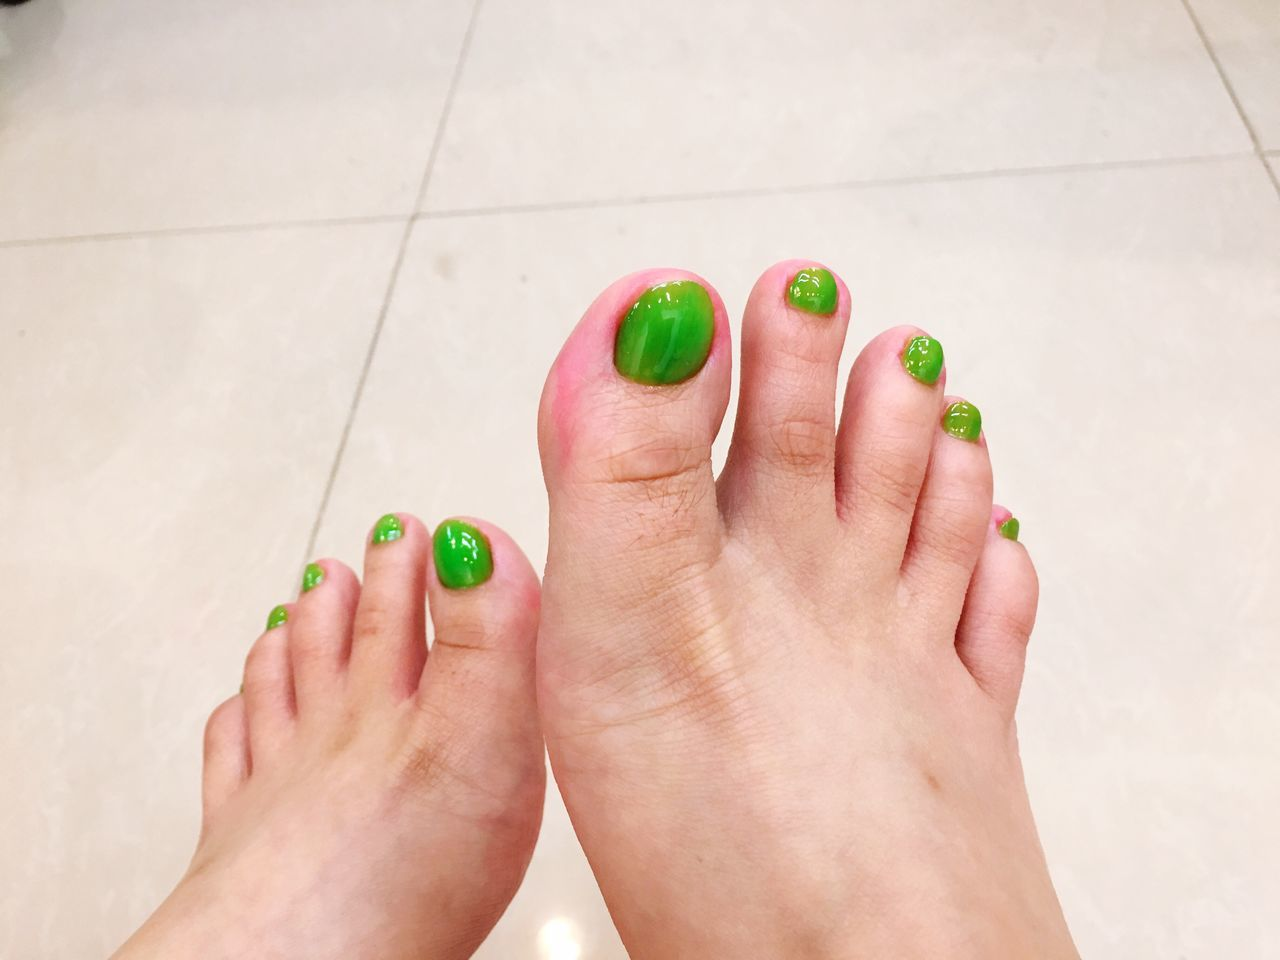 EyeEm Selects Green Nail Polish Human Body Part Human Foot Barefoot Toenail Human Leg Women Nail Polish Low Section Real People One Person Indoors  Leisure Activity Pedicure Close-up Day Adult People